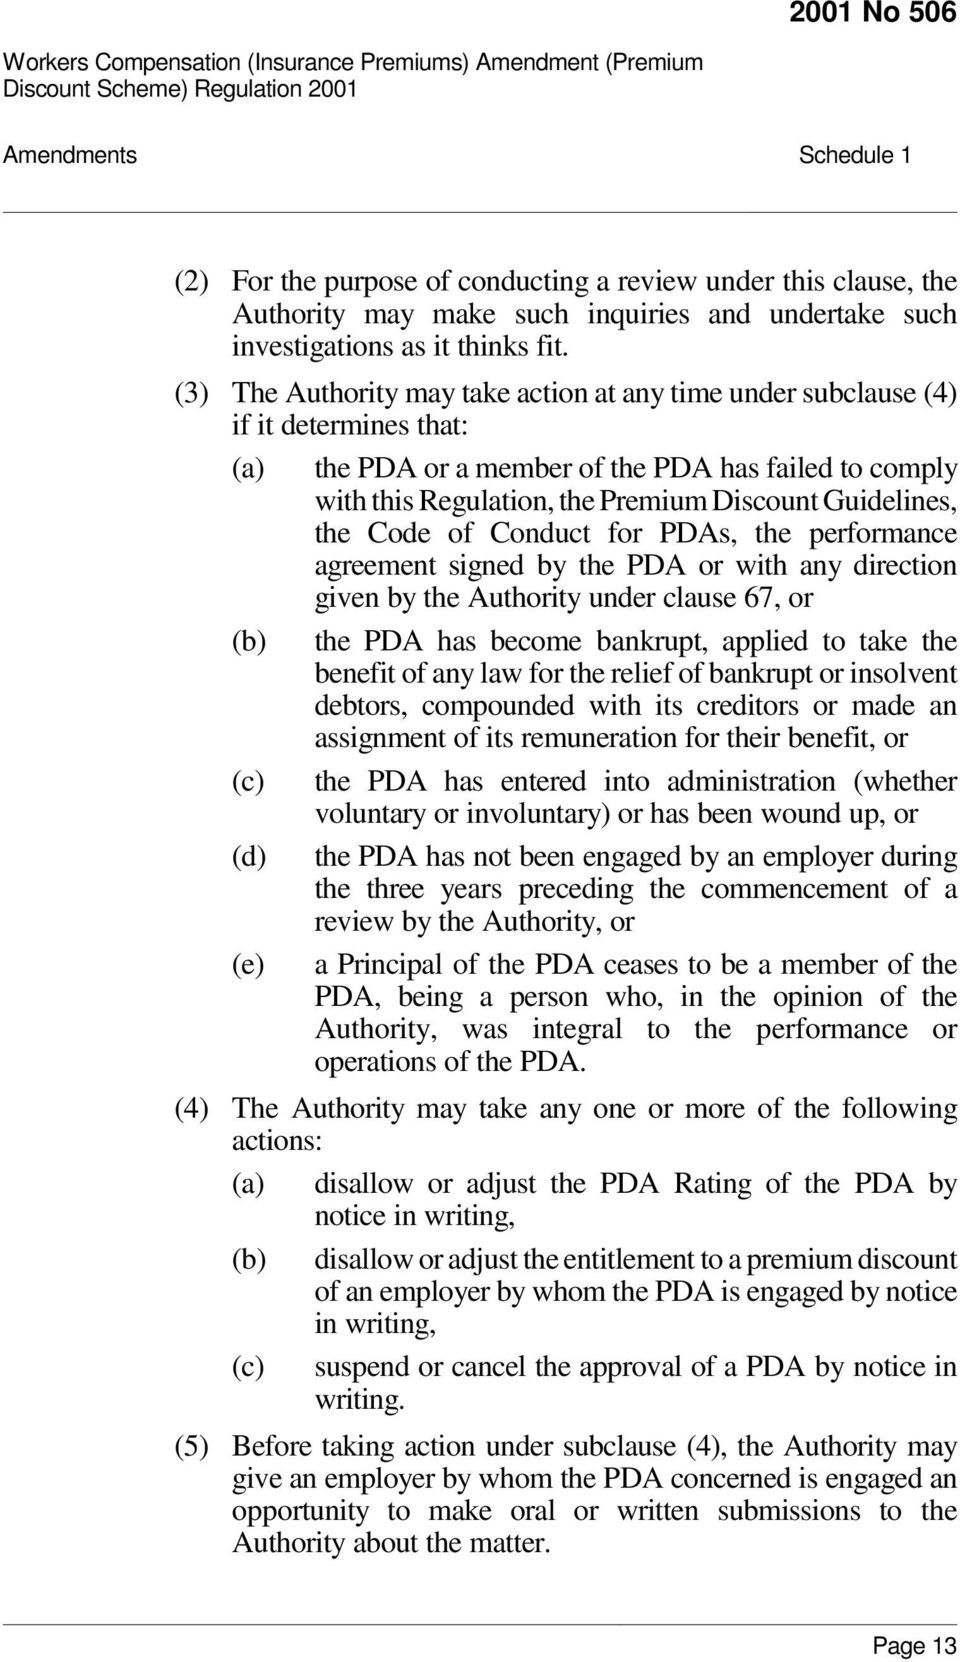 the Code of Conduct for PDAs, the performance agreement signed by the PDA or with any direction given by the Authority under clause 67, or (b) the PDA has become bankrupt, applied to take the benefit